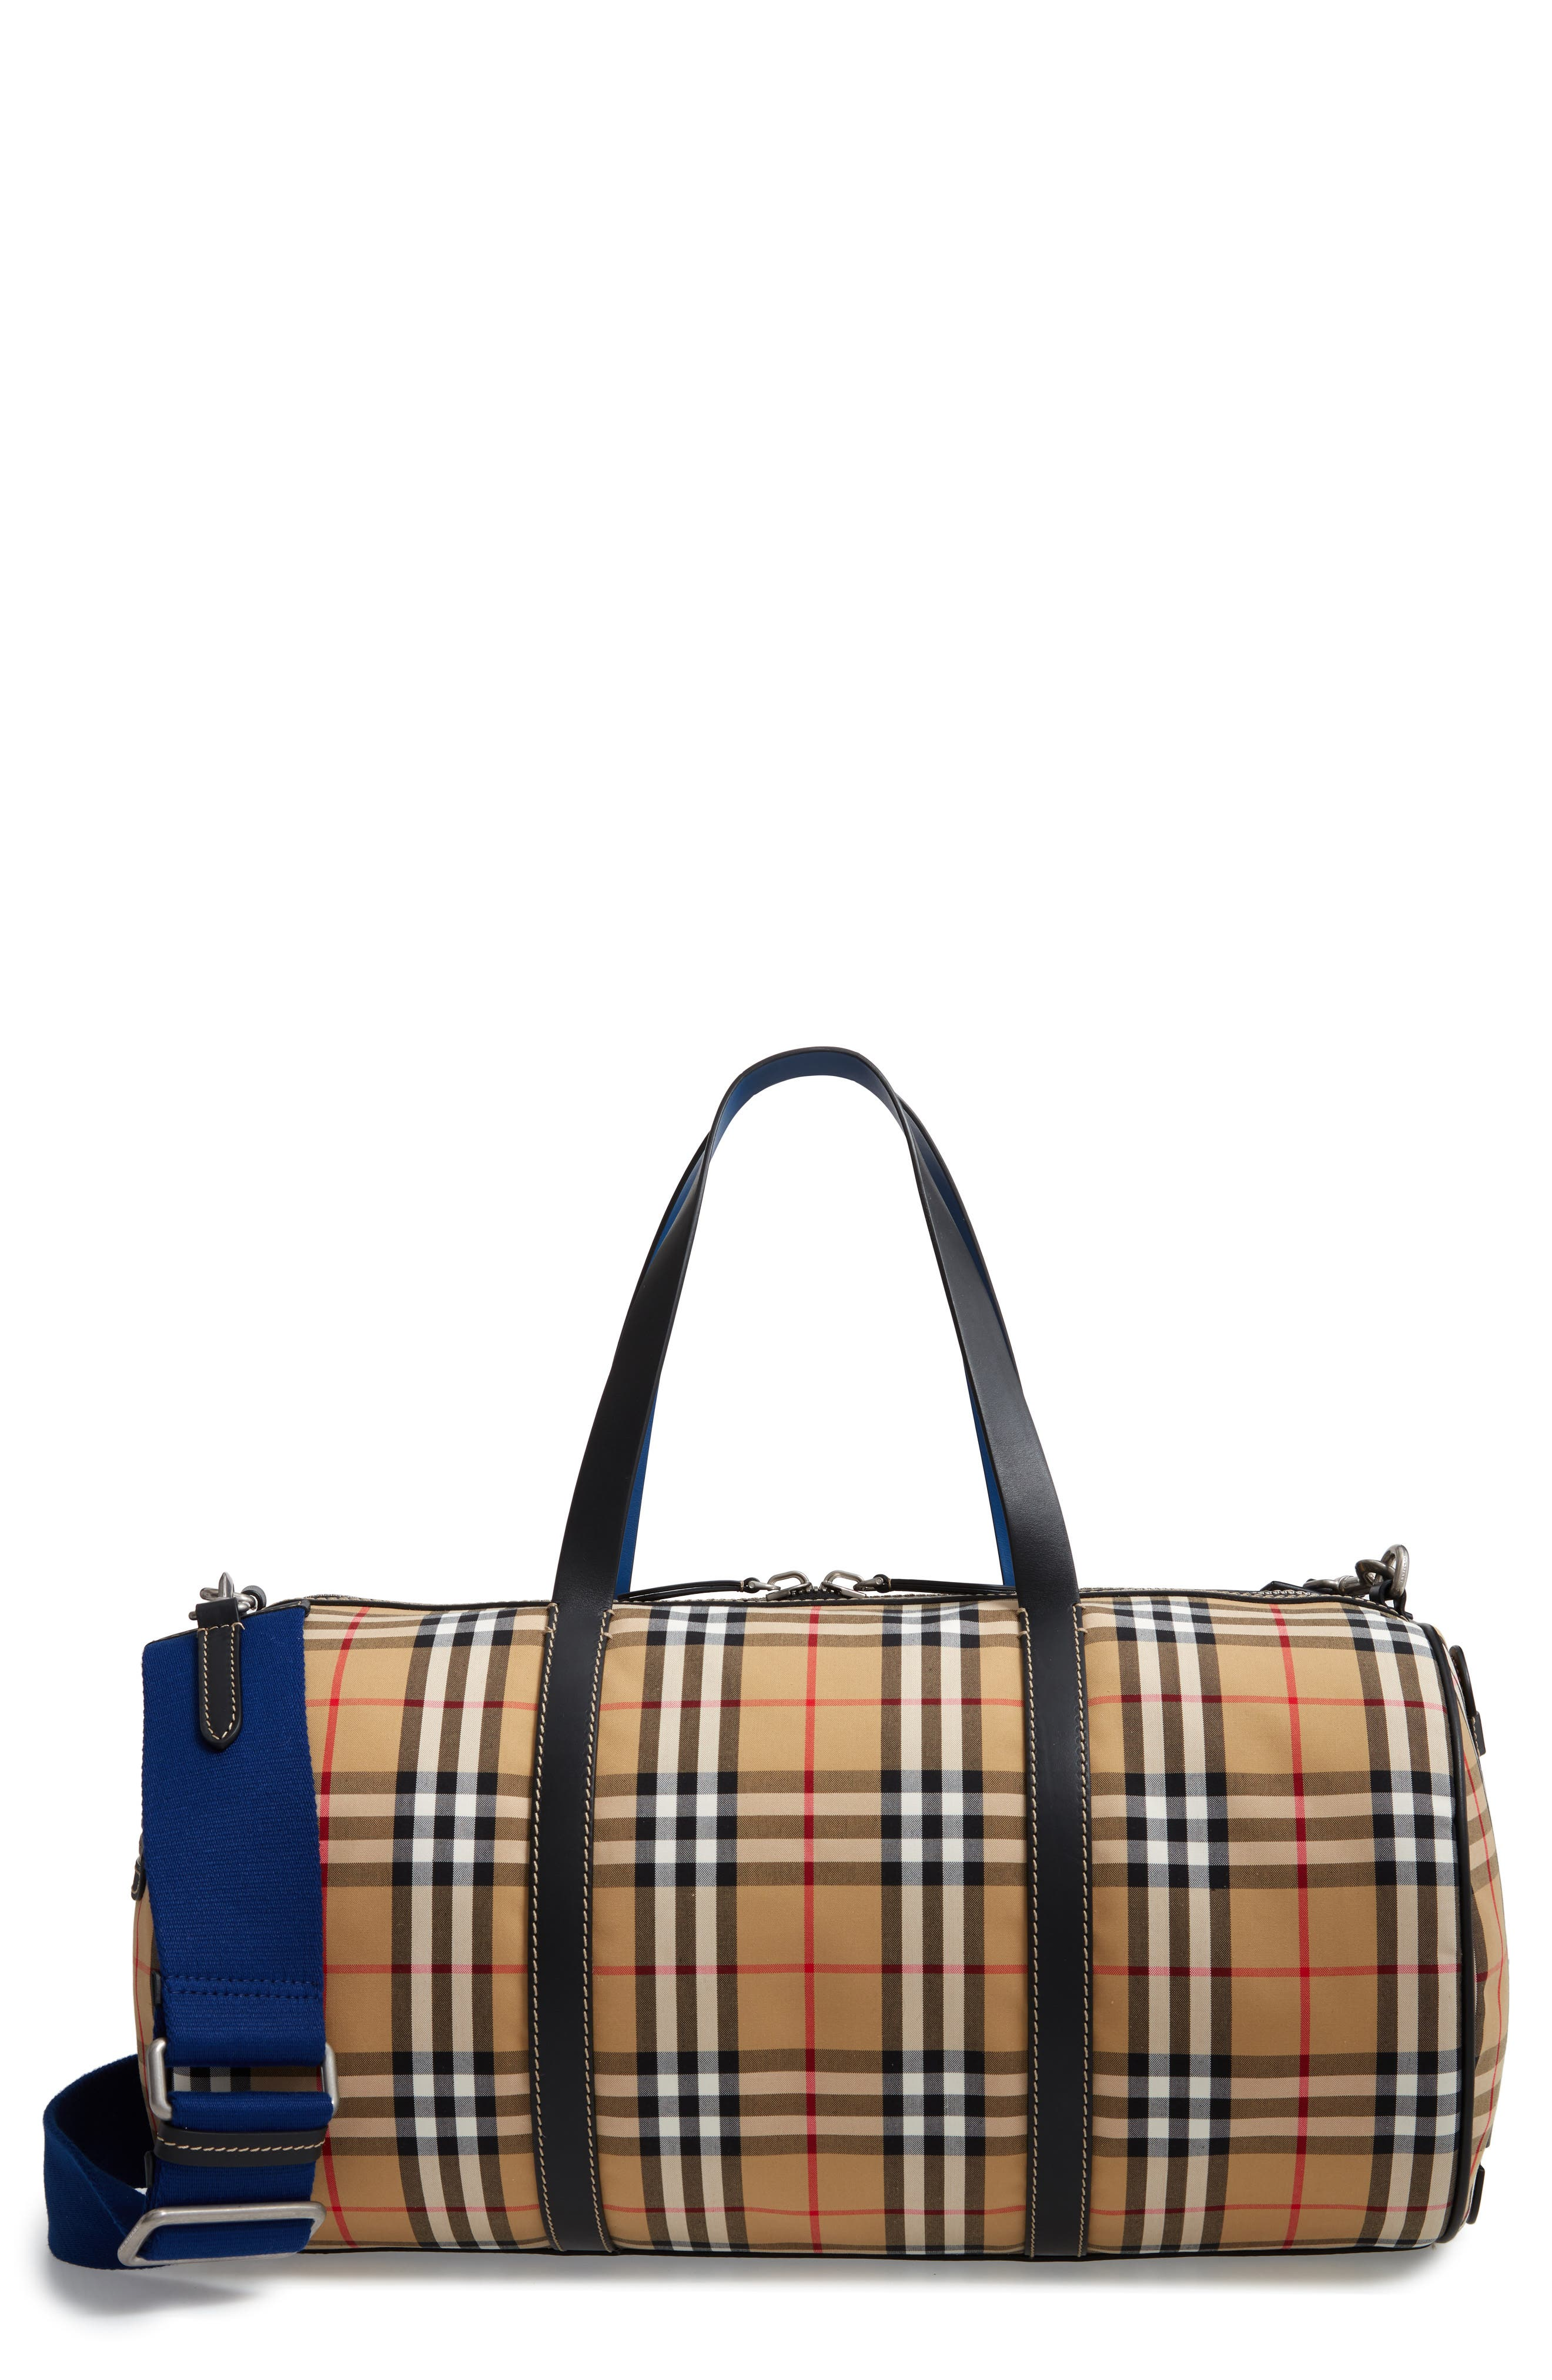 Medium Kennedy Vintage Check Duffel Bag,                             Main thumbnail 1, color,                             CANVAS BLUE